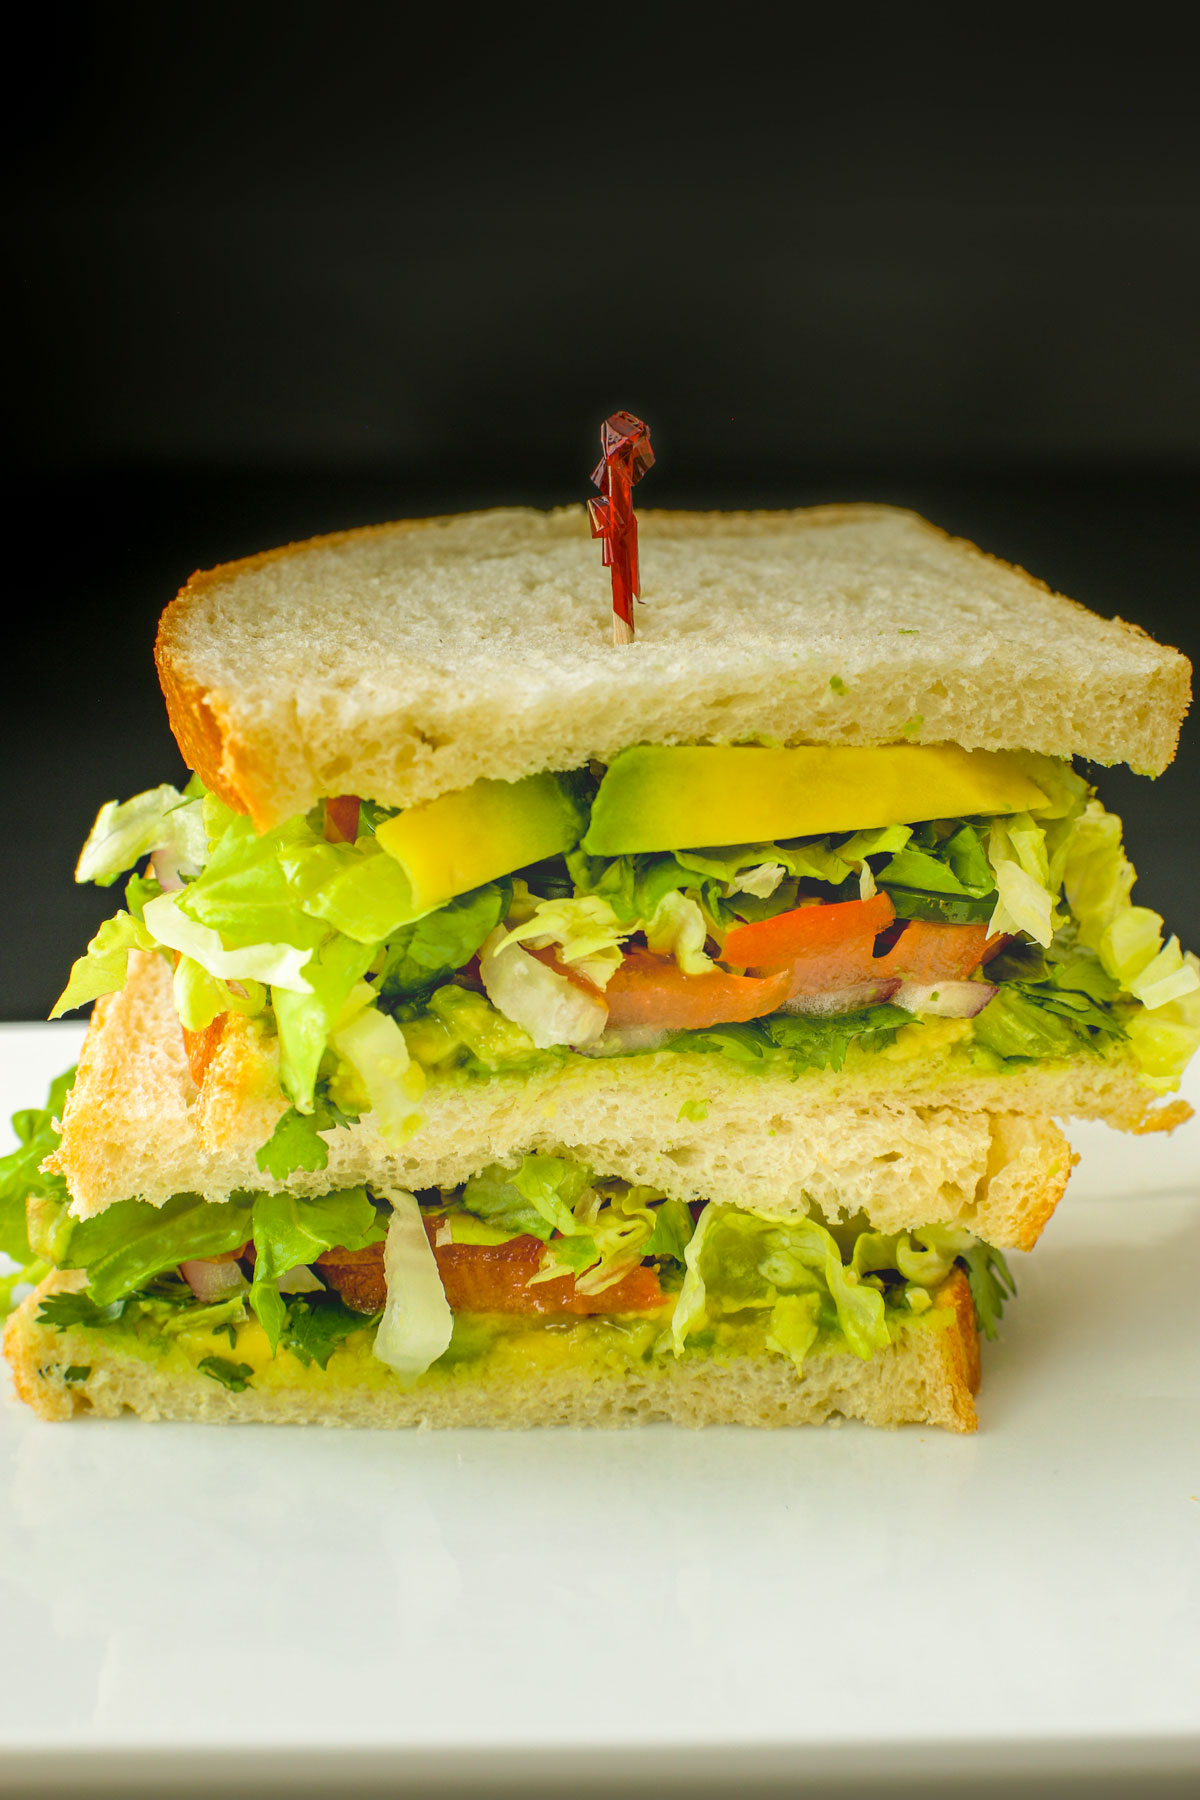 vegan sandwich with avocado cut in half and stacked on a white platter.